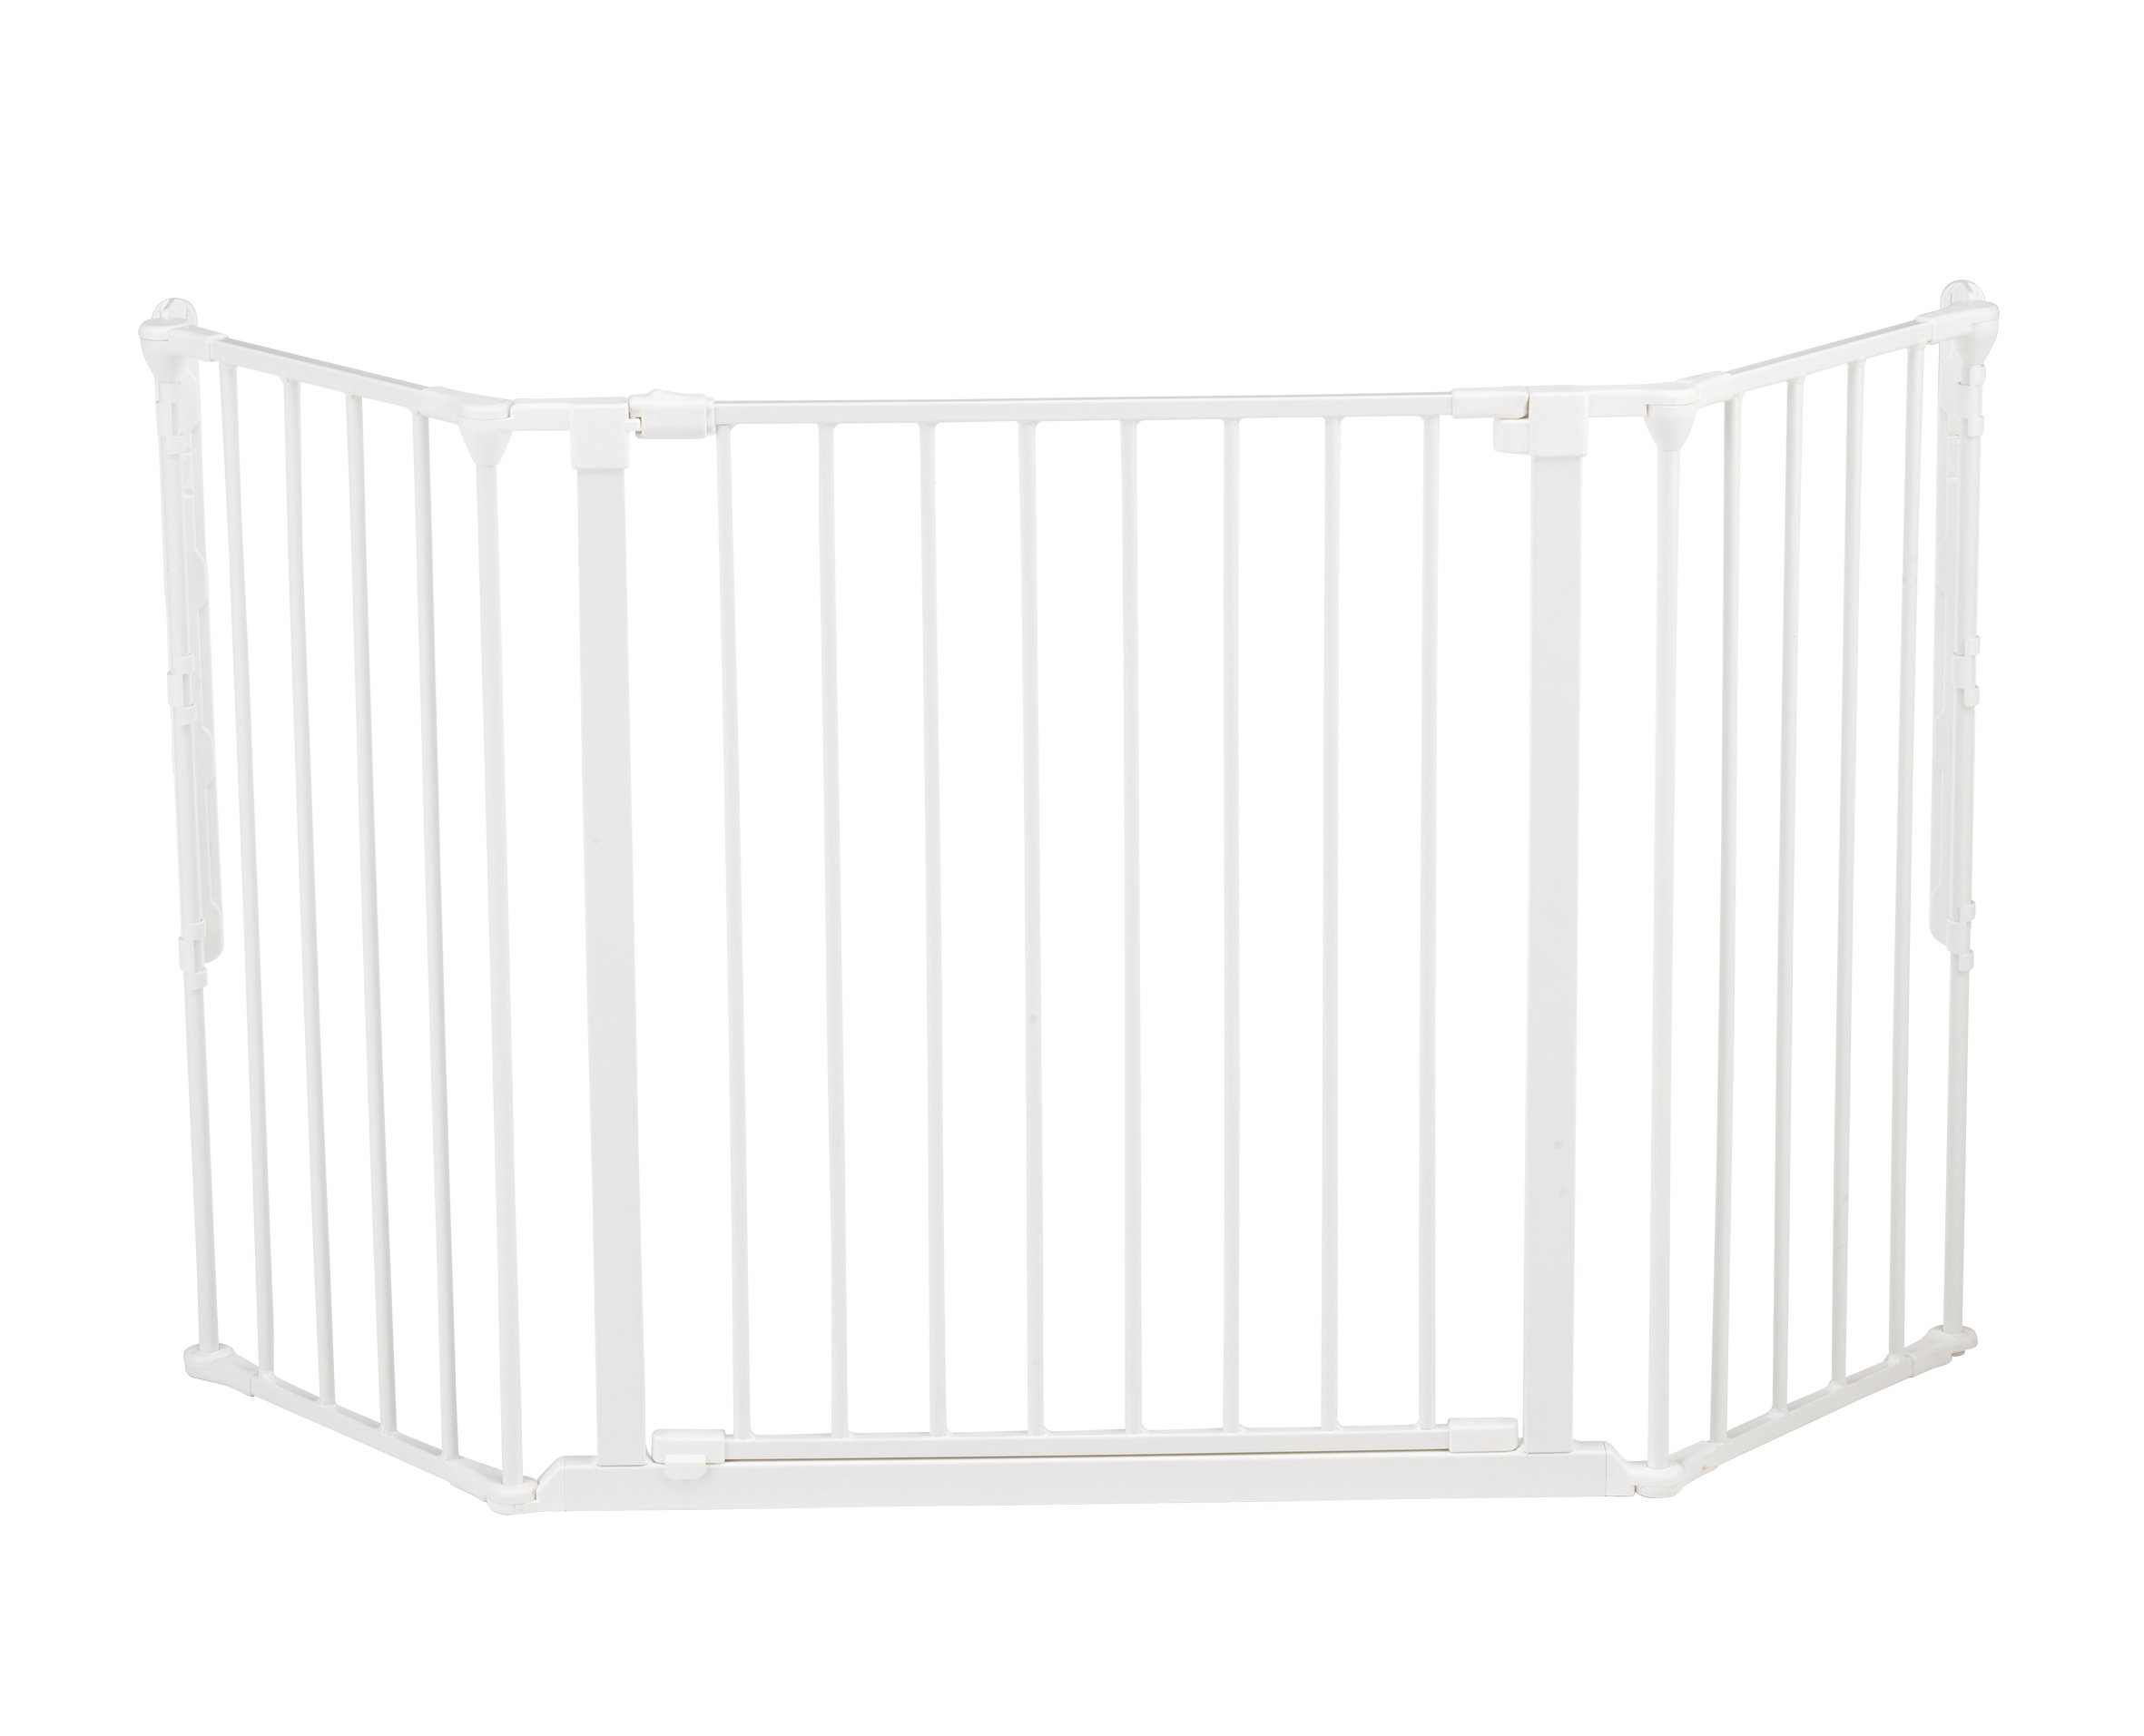 BabyDan Configure (Medium 90-146cm, White)  Only configure system fulfilling newest European safety standard Multi purpose room divider and gate for wider openings Flexible and easy to fit 1